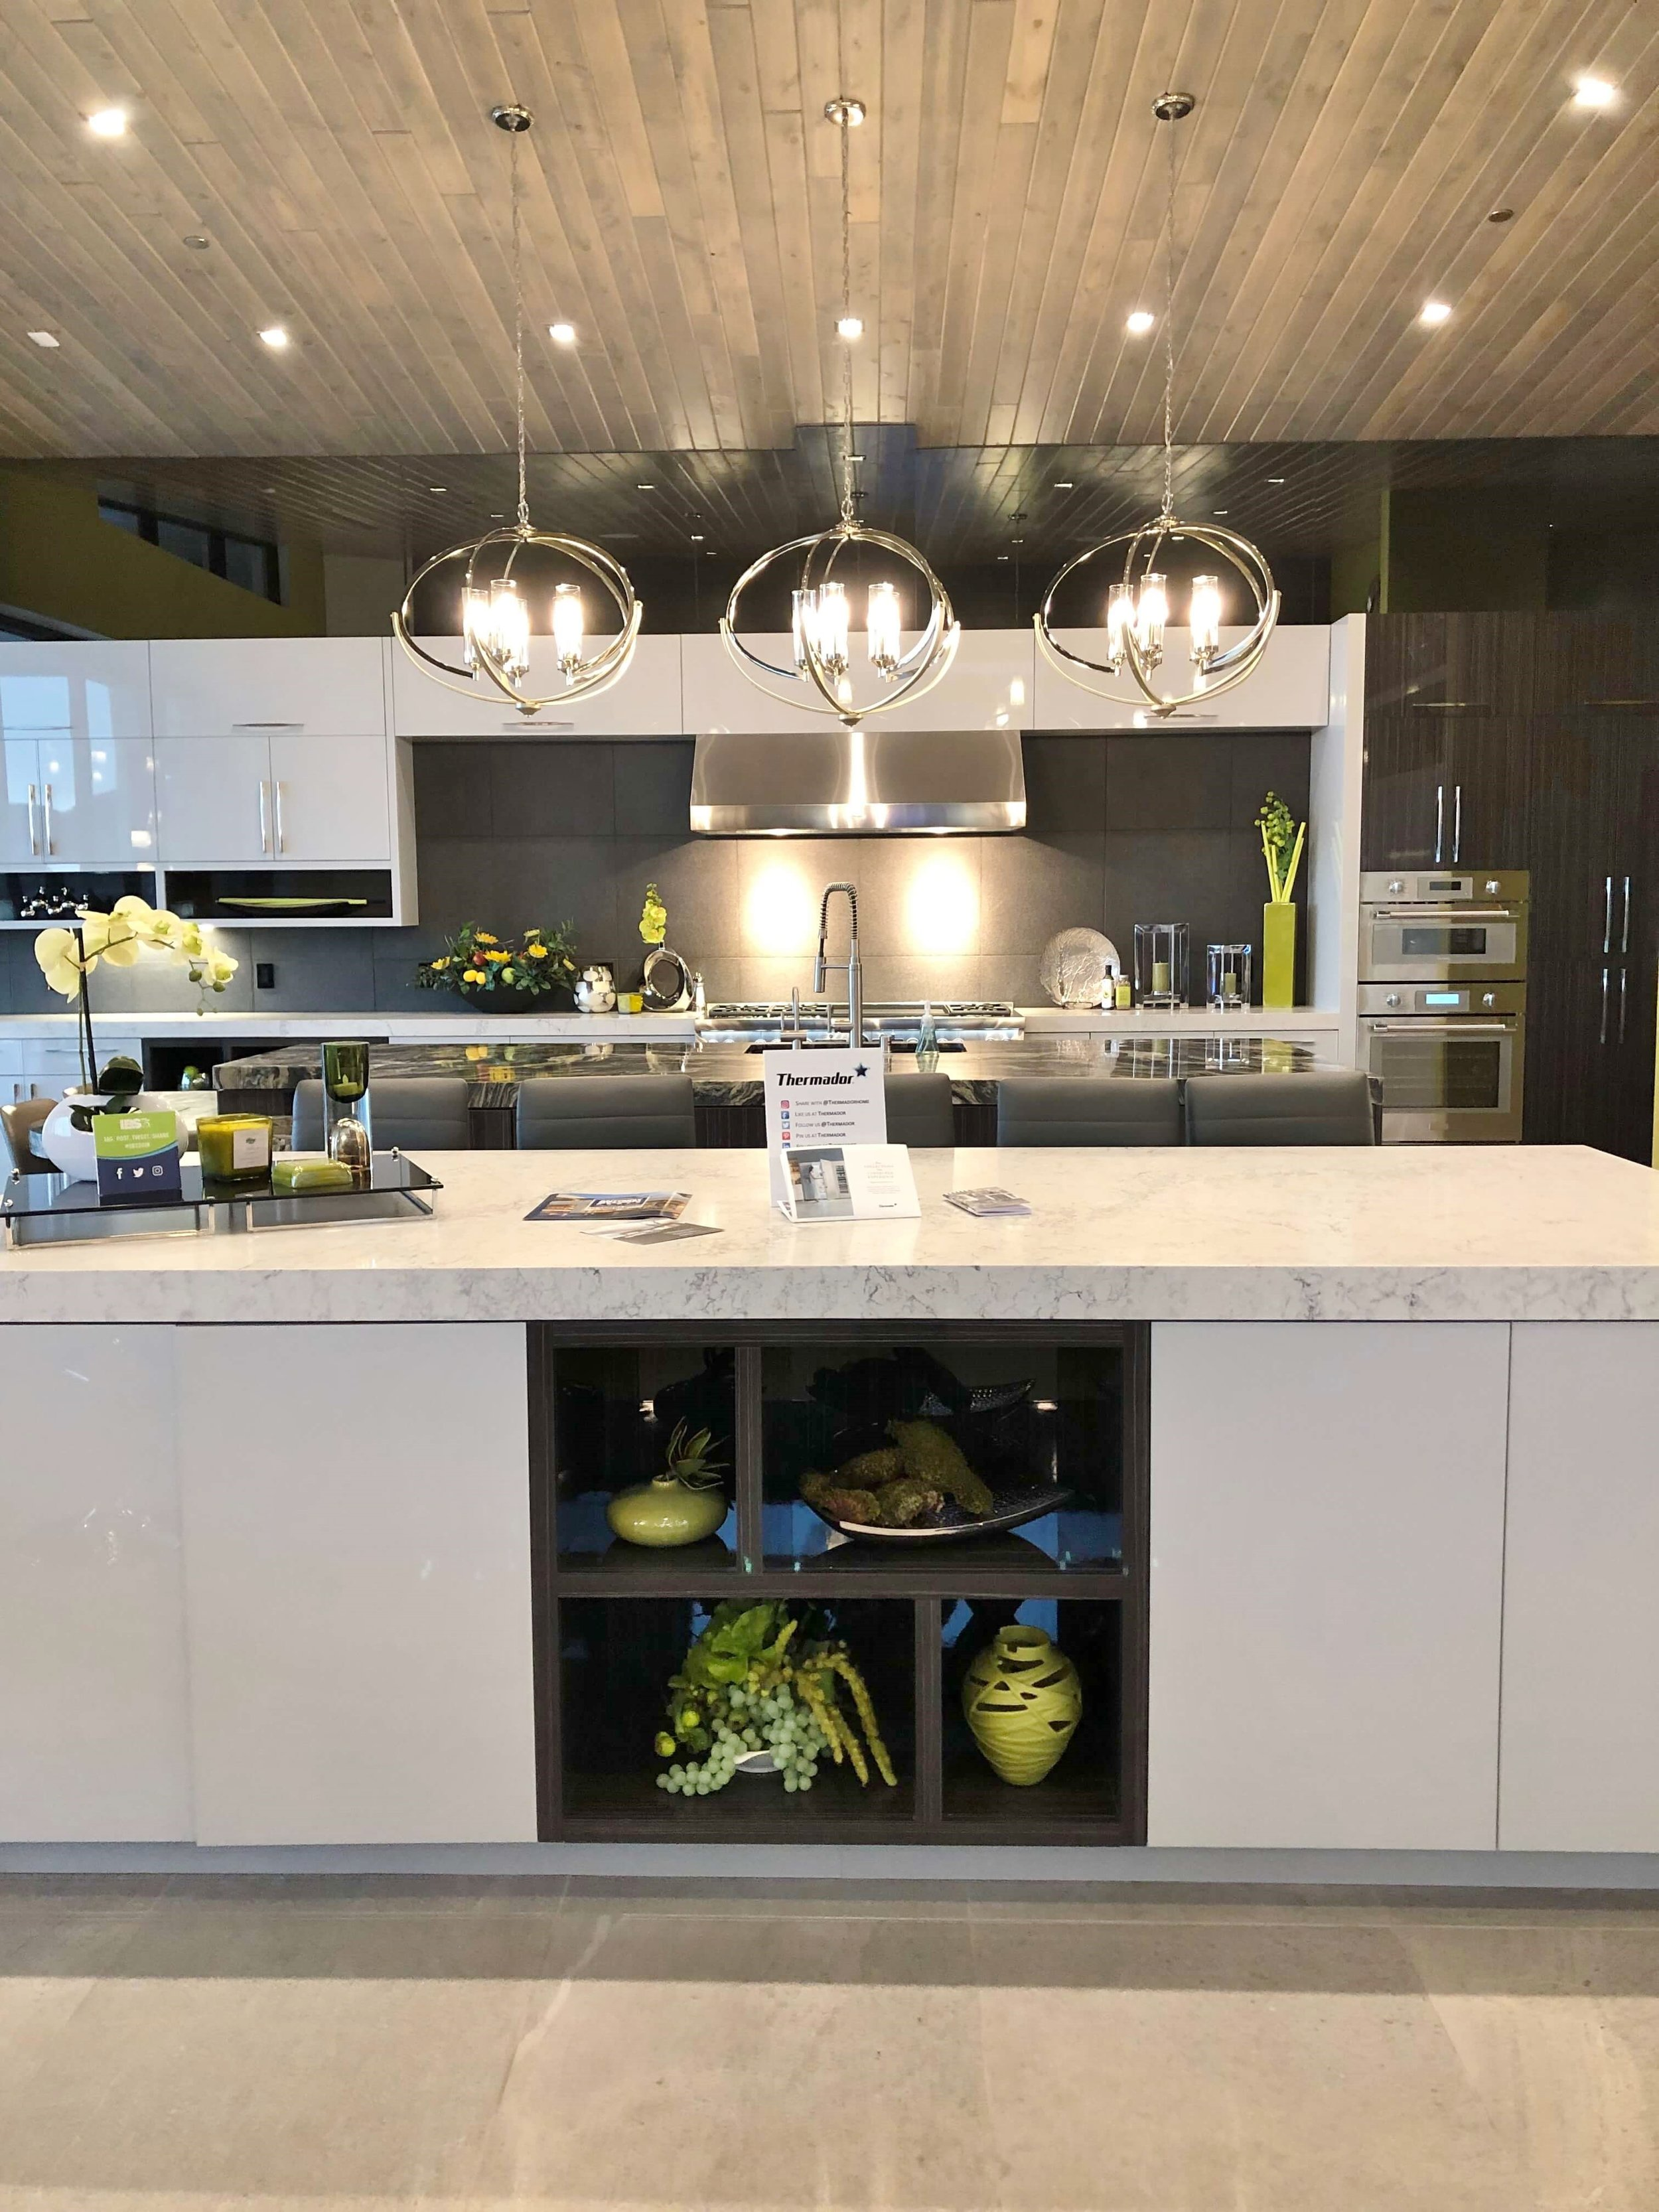 Contemporary kitchen w/ 2 islands, The New American Home Tour 2019 | Designed and built by Sun West Custom Homes  #contemporaryhome #kitchen